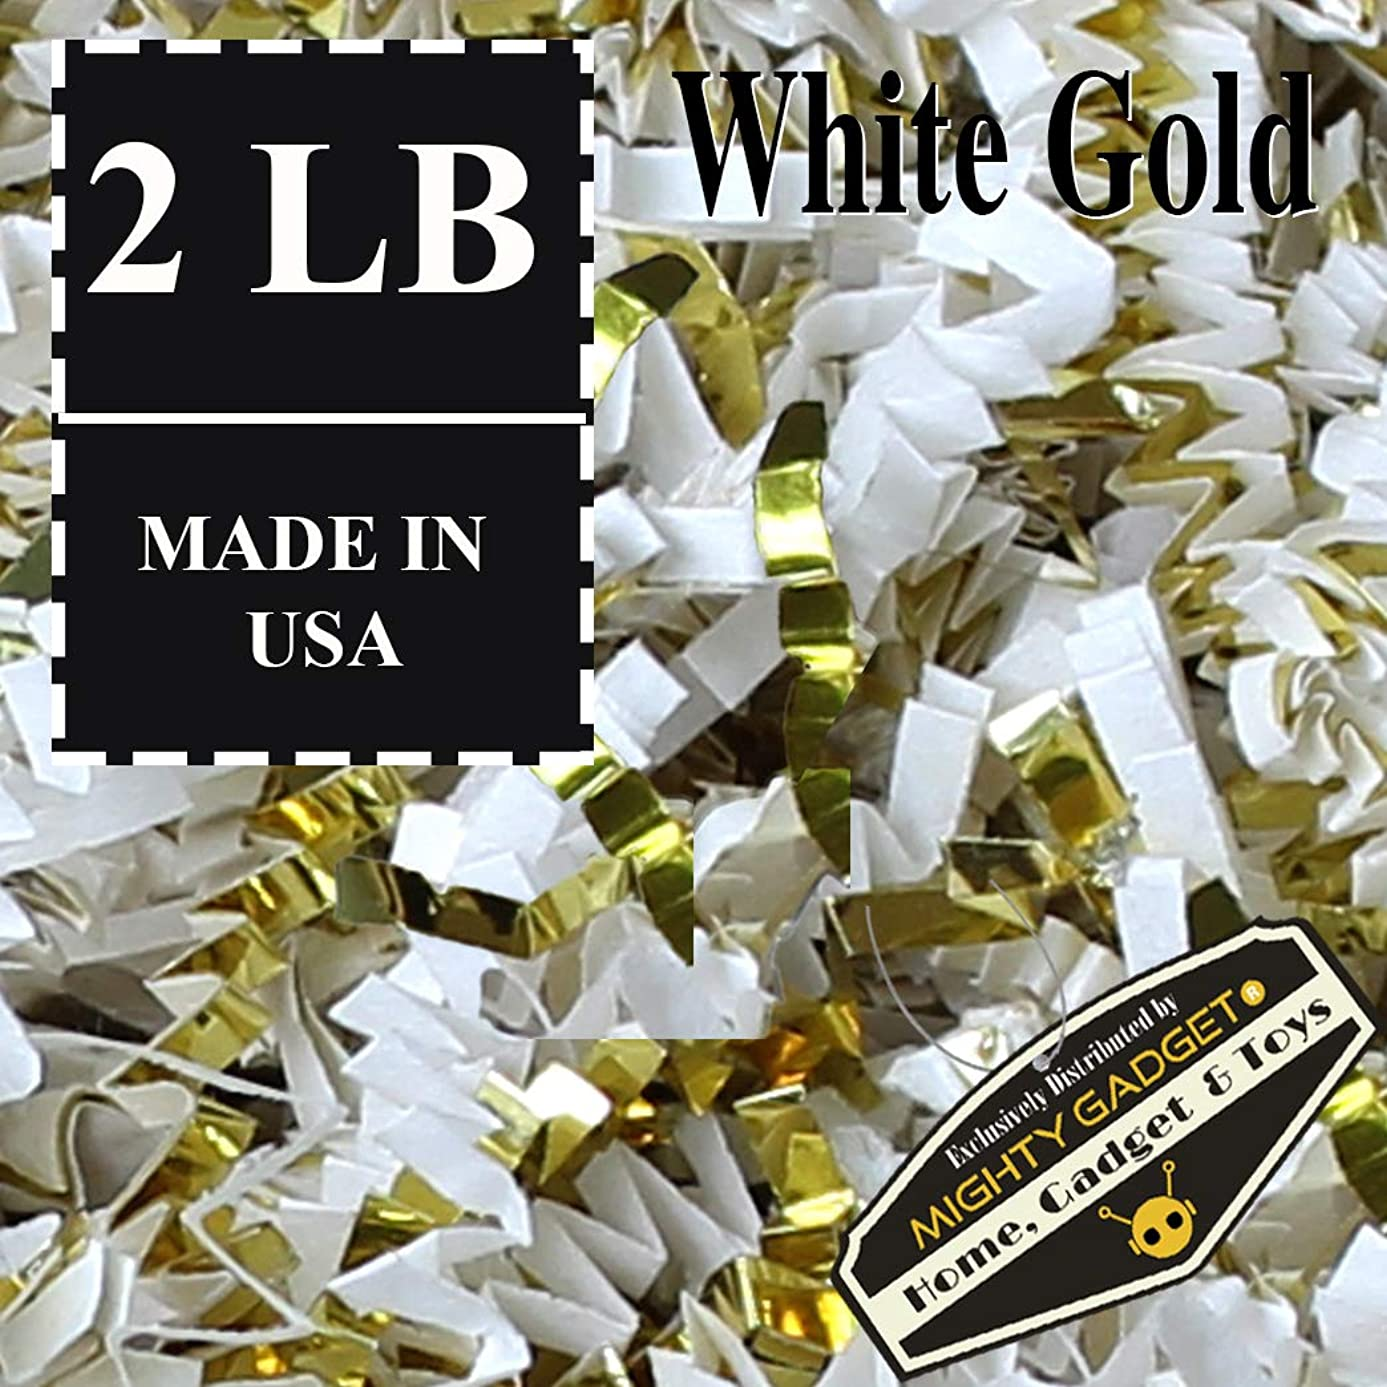 Mighty Gadget (R) 2 LB Premium White Gold Metallic Mix Crinkle Cut Paper Shred Filler for Gift Wrapping & Basket Filling